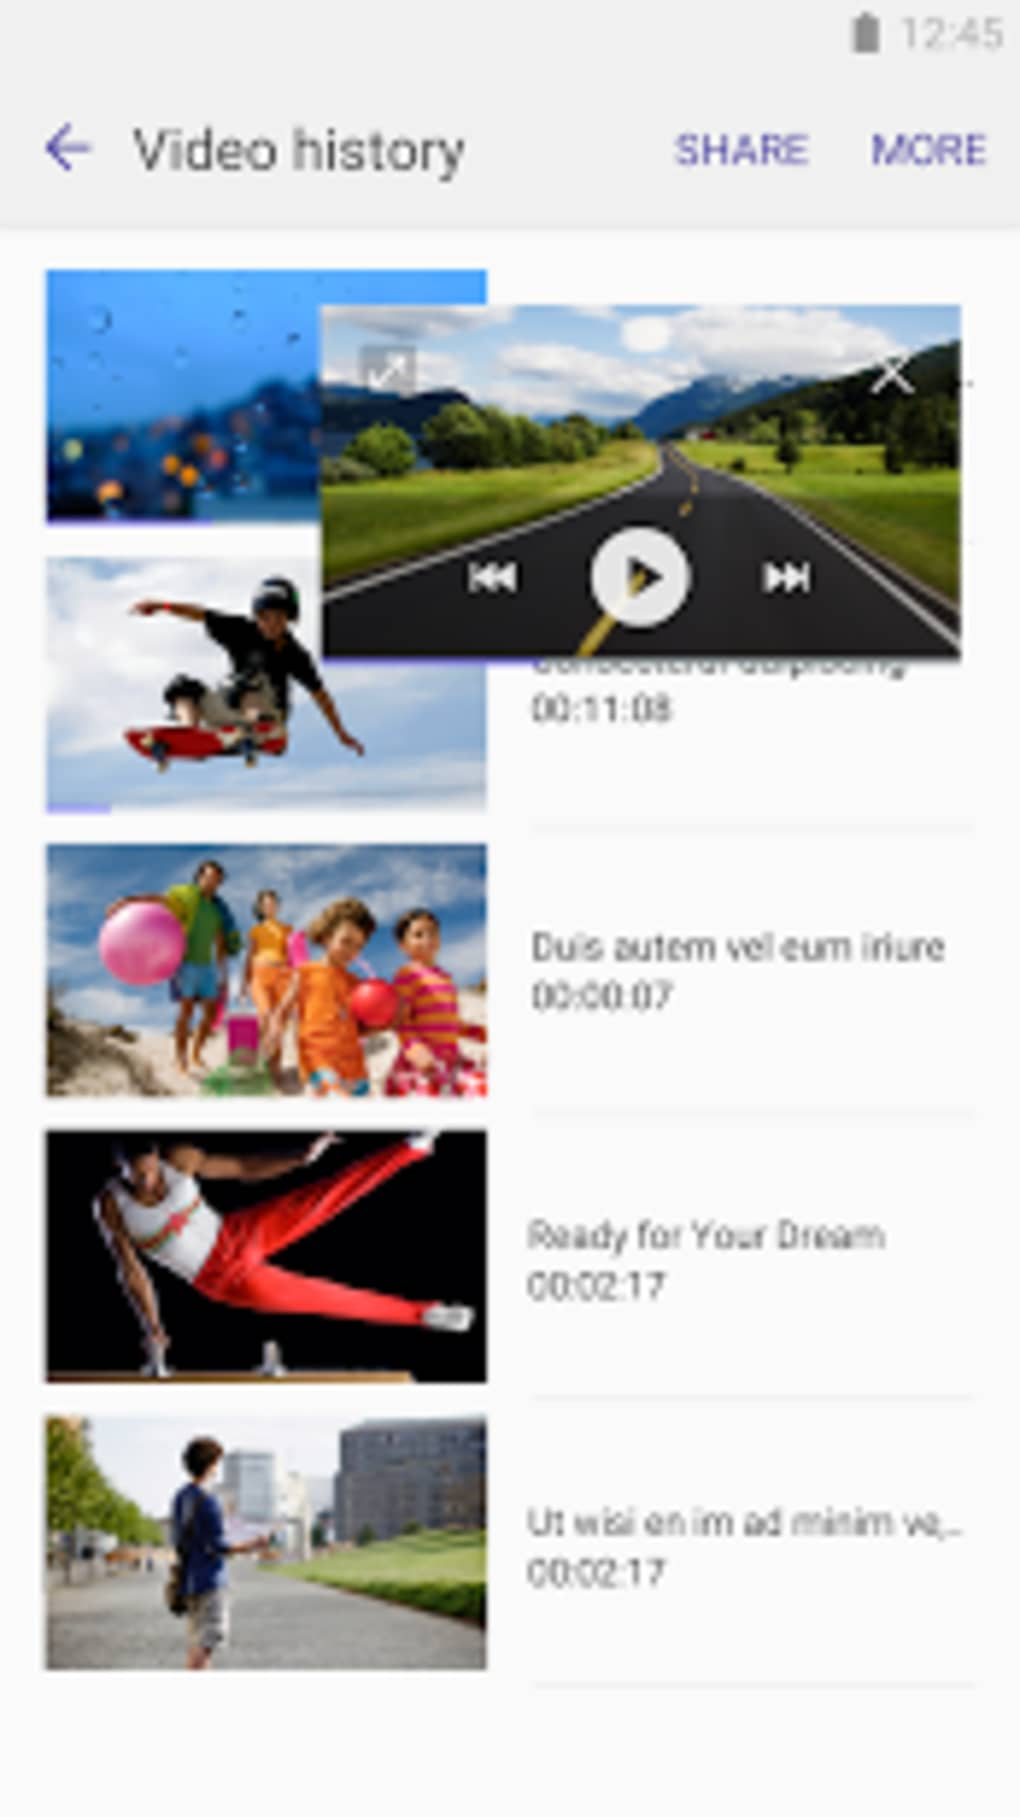 Samsung Internet for Android (Android) - Download